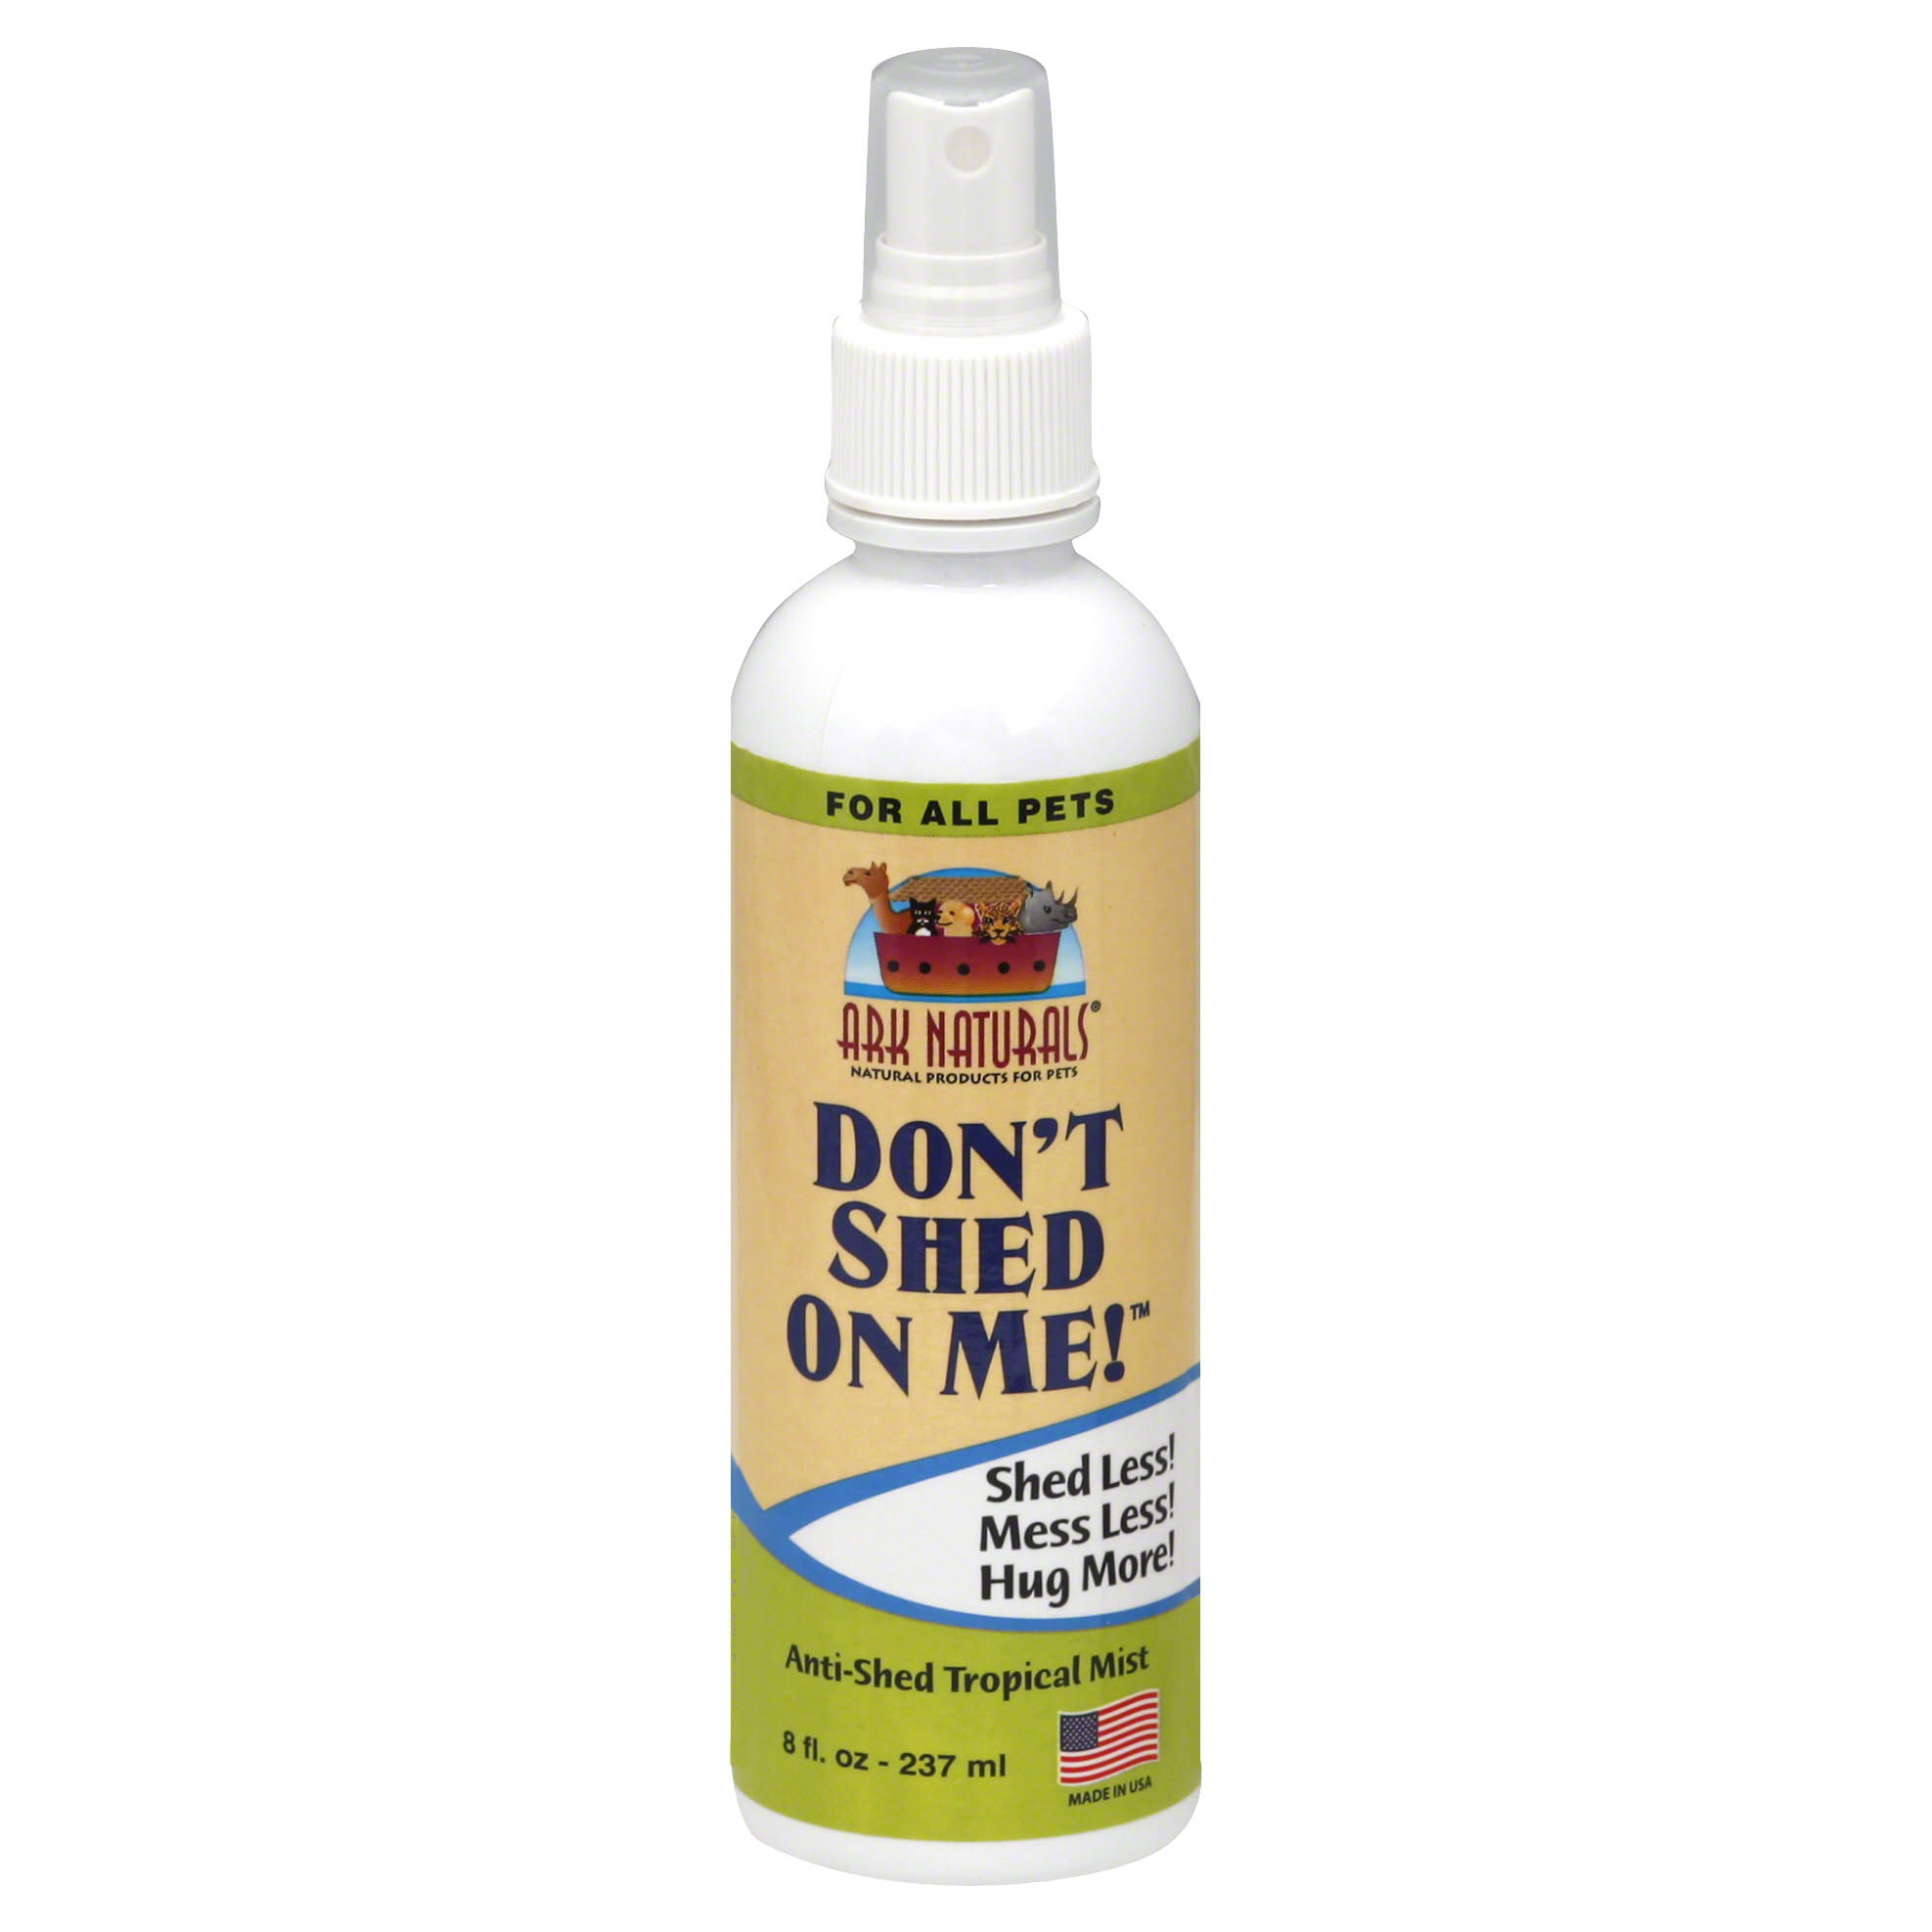 Ark Naturals Don't Shed on Me Spray - 8 fl oz